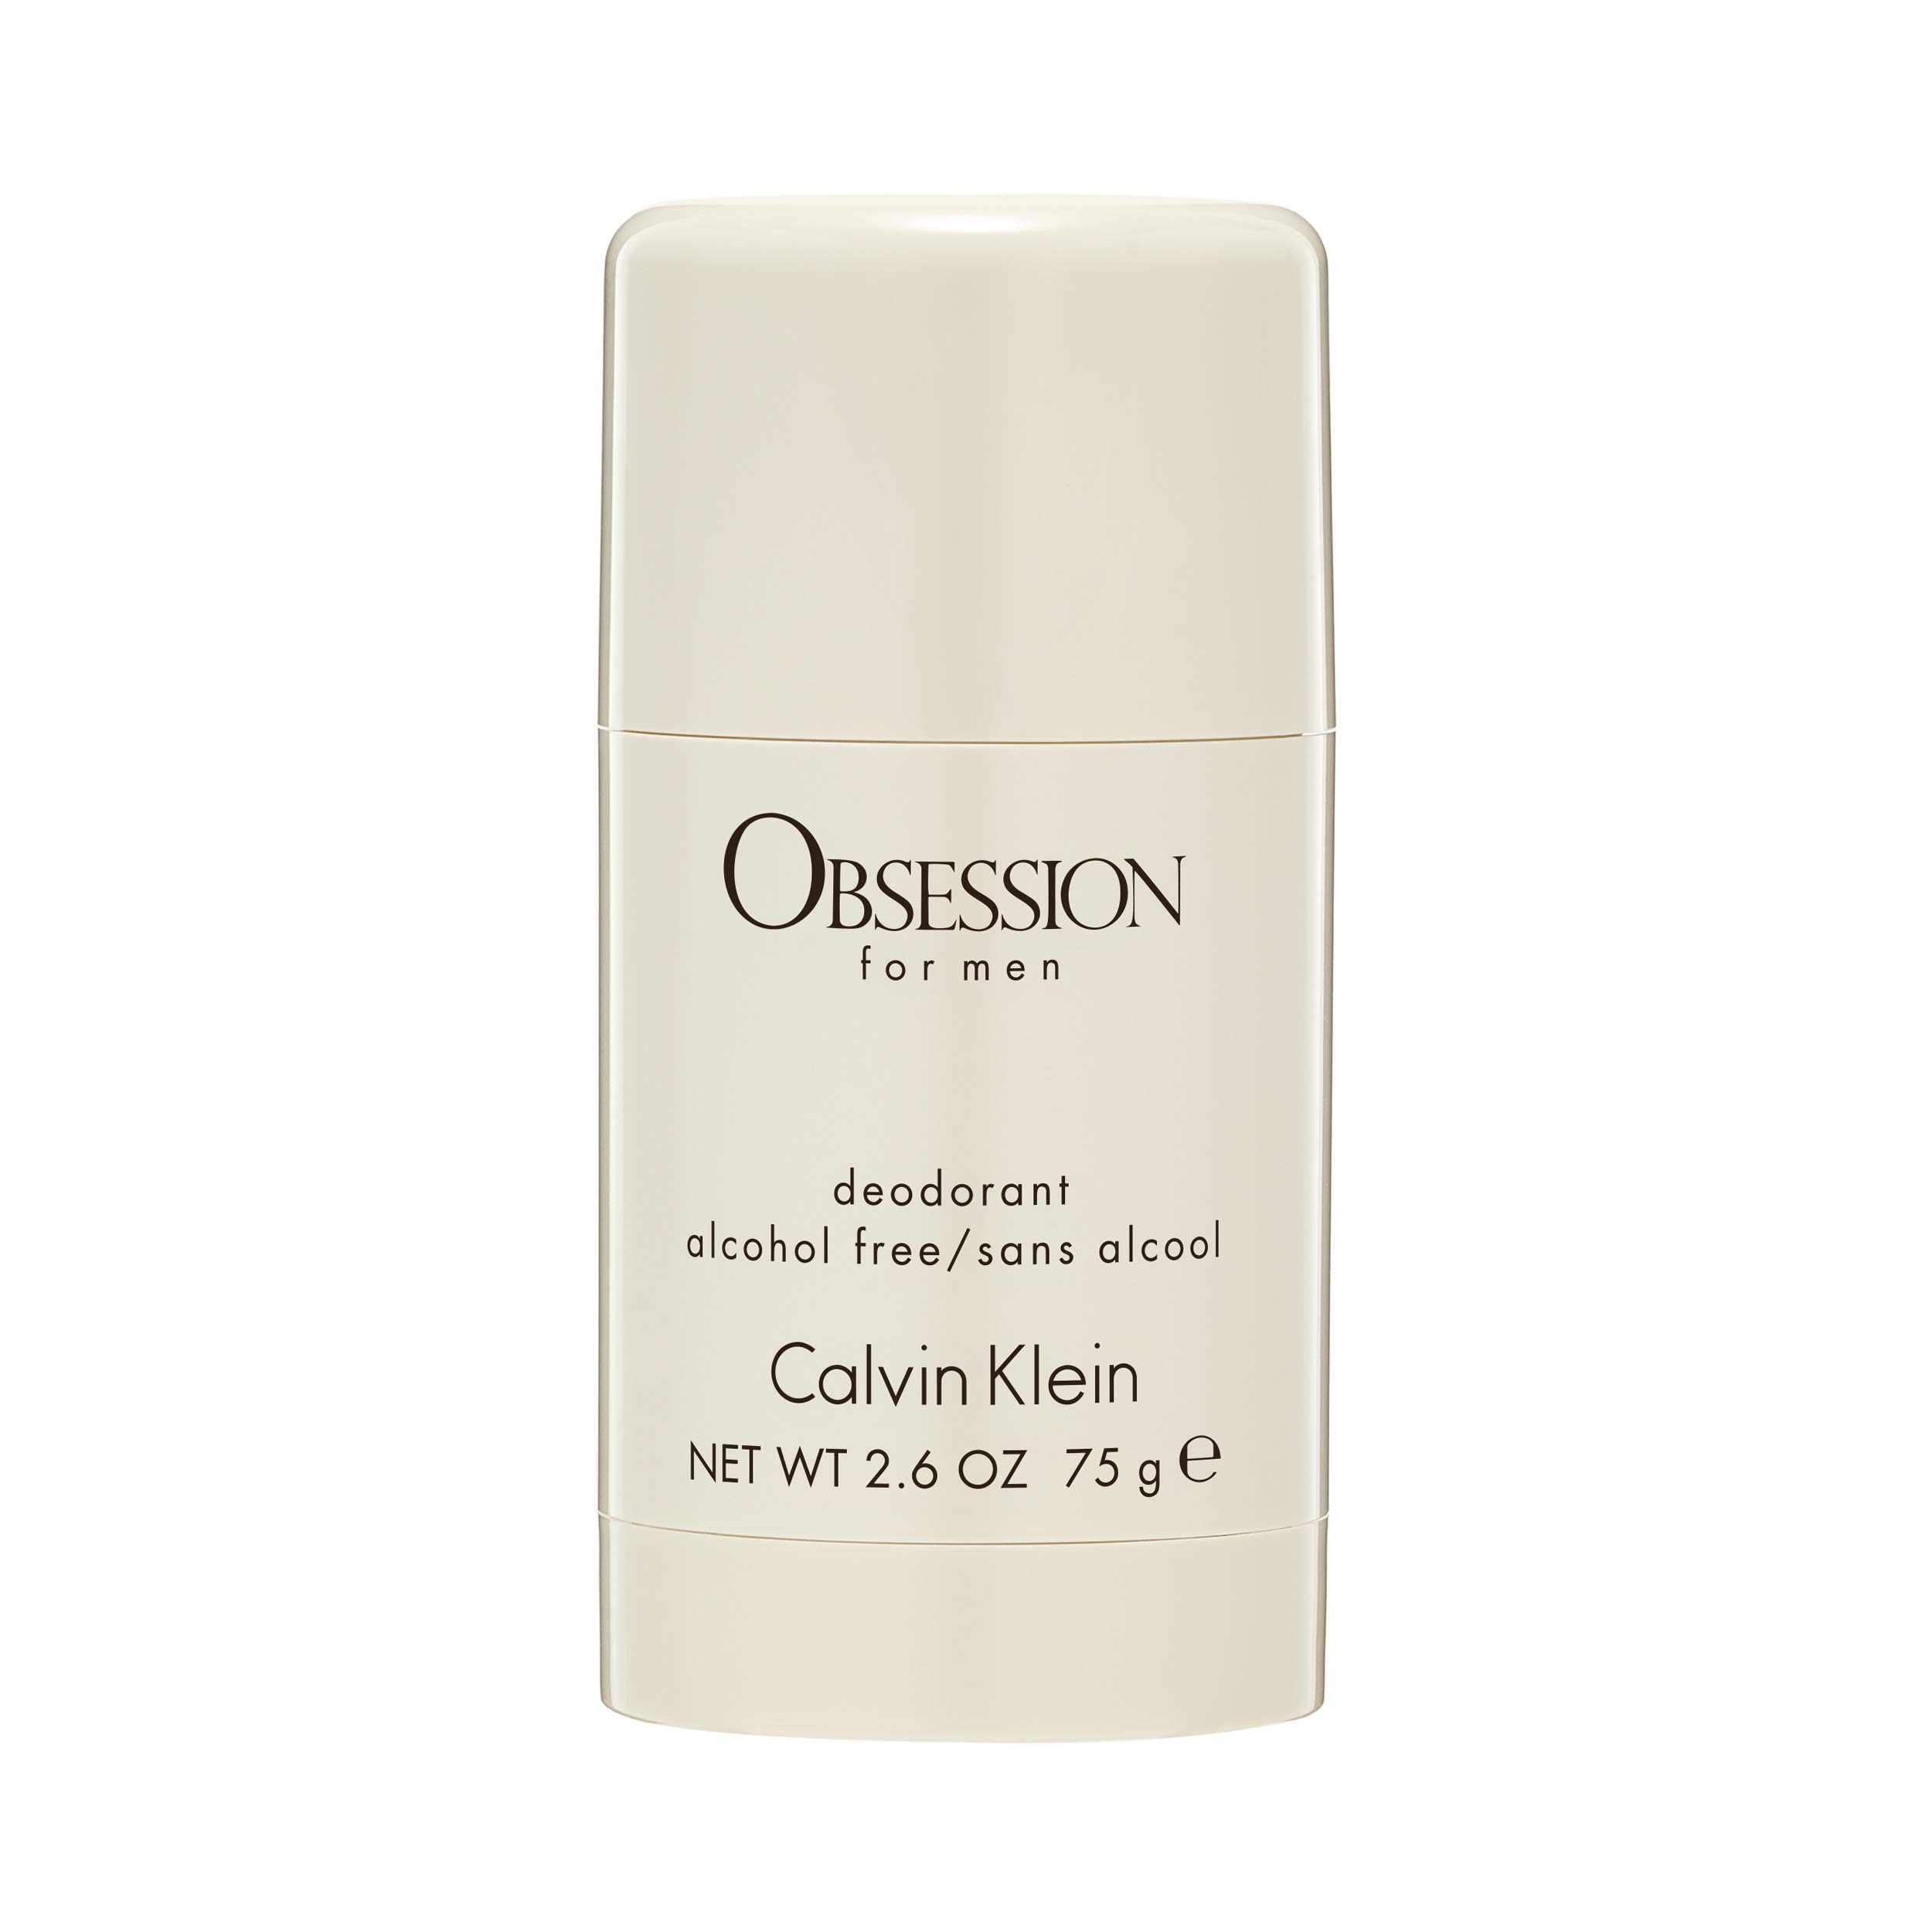 Calvin Klein Obsession for Men Deodorant Stick, 75 g